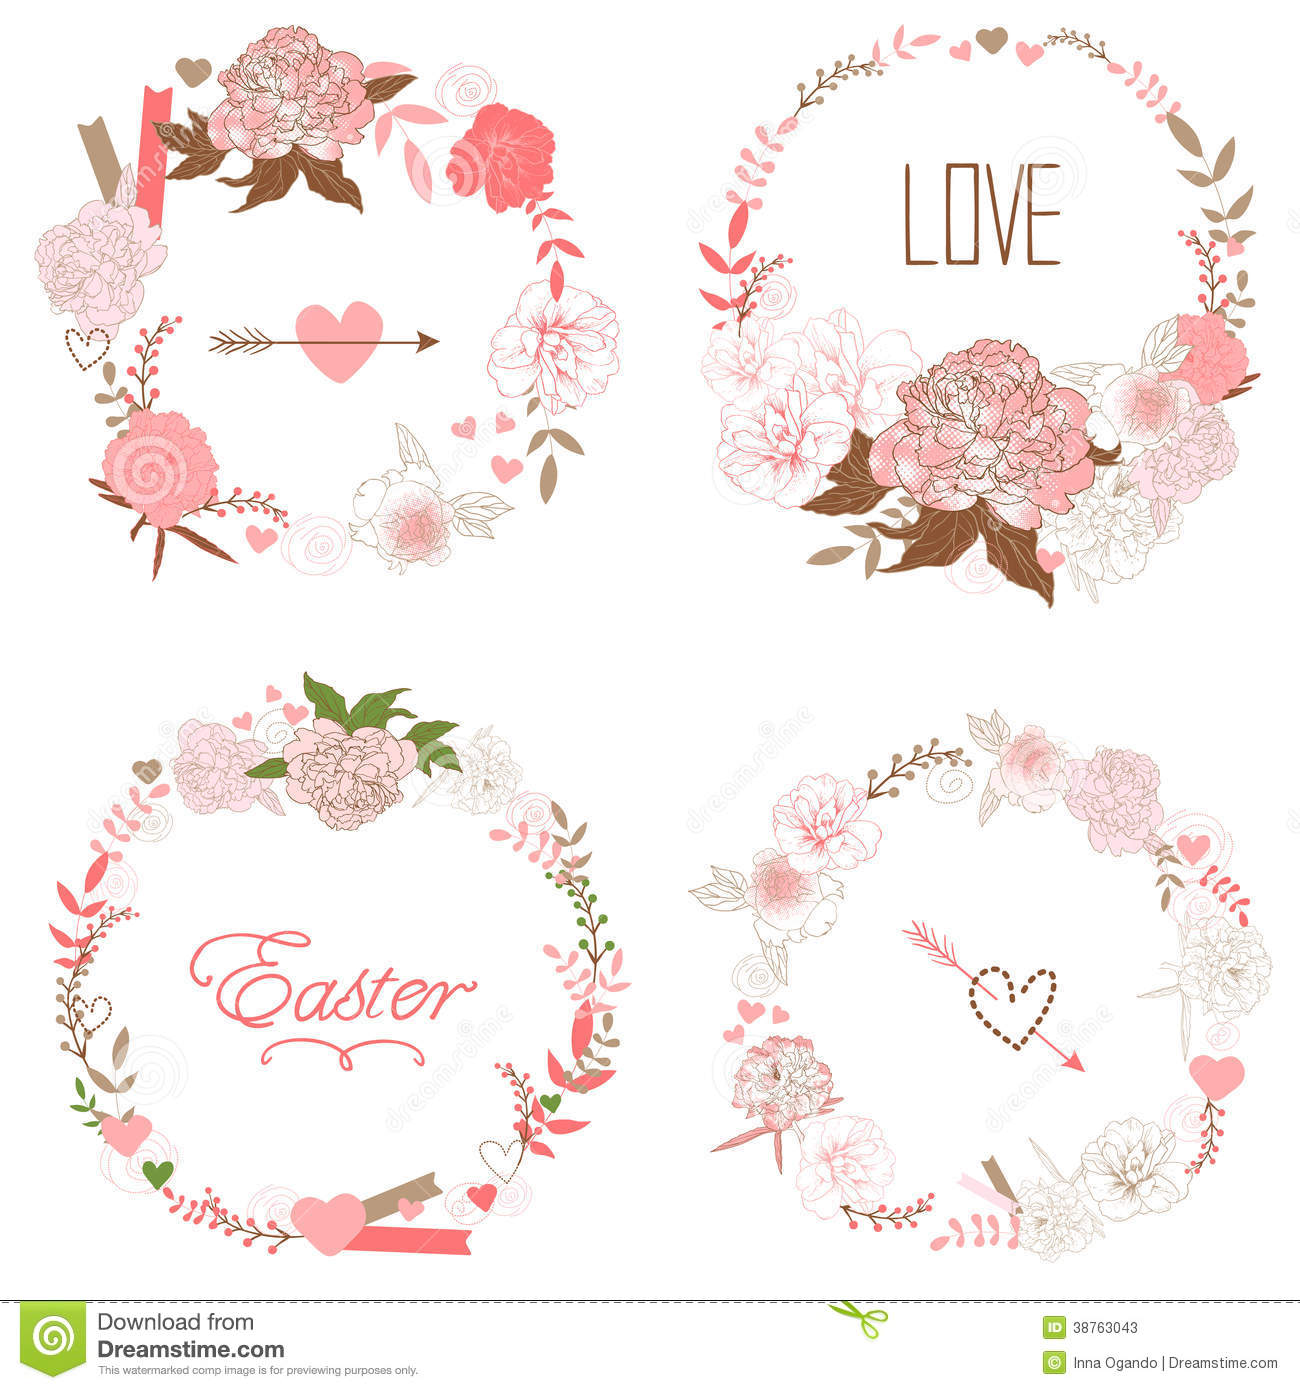 ... of the wreath perfect for wedding invitations and birthday cards